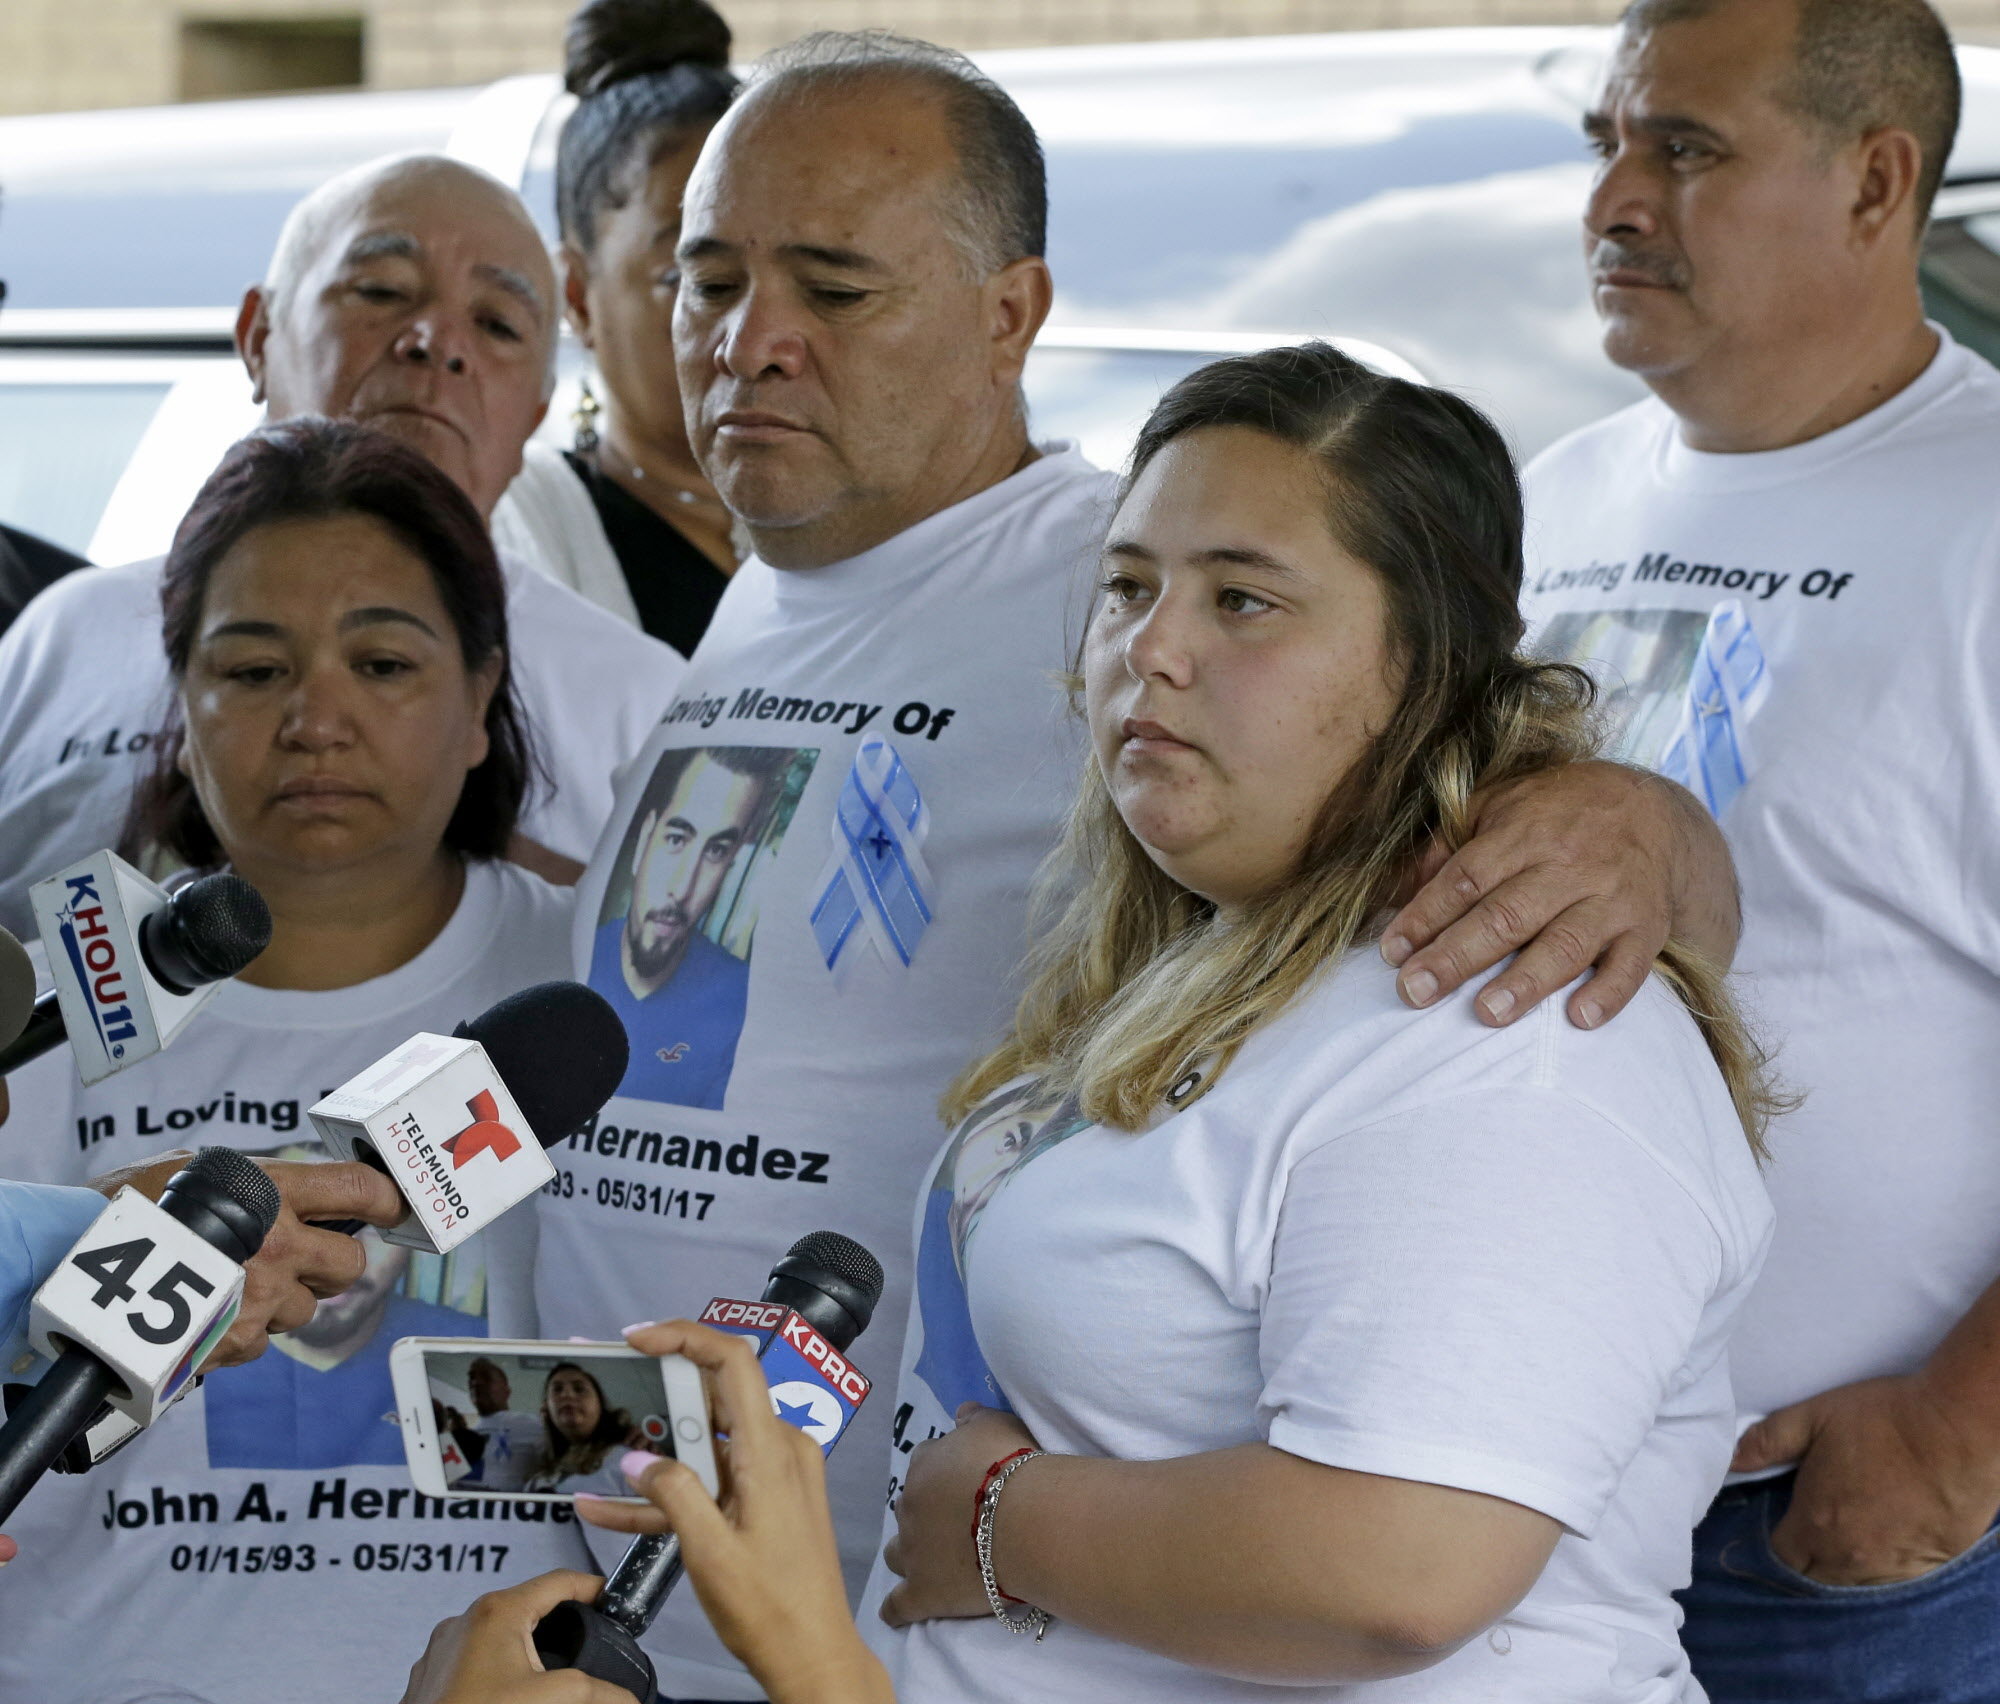 John hernandez state farm agent - Funeral Held For Man Who Died After Altercation At Denny S In Crosby Houston Chronicle